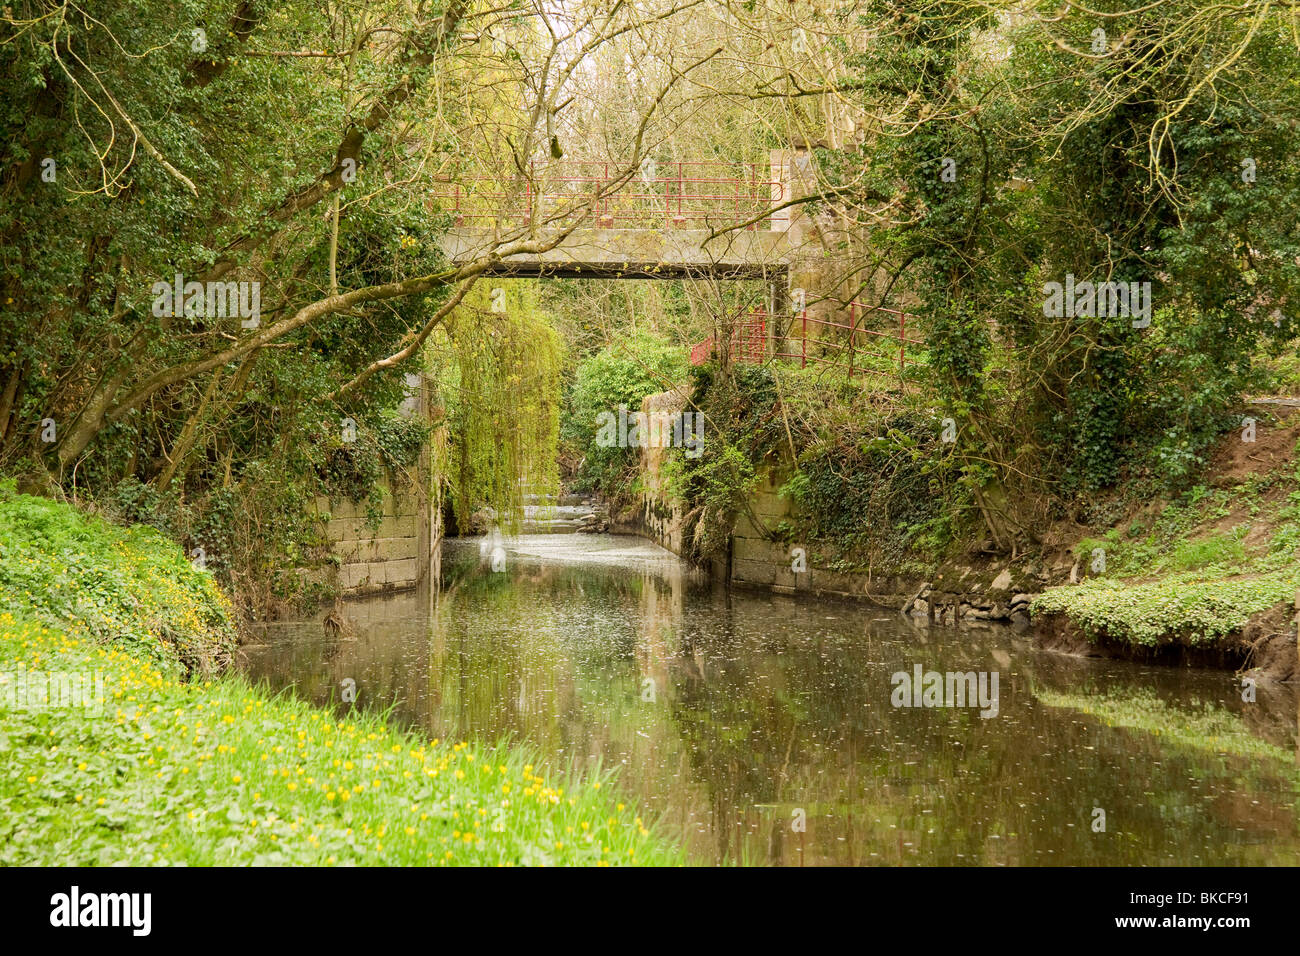 The old disused canal lockgates at Moneypenny's lock on the Newry to Portadown canal - Stock Image